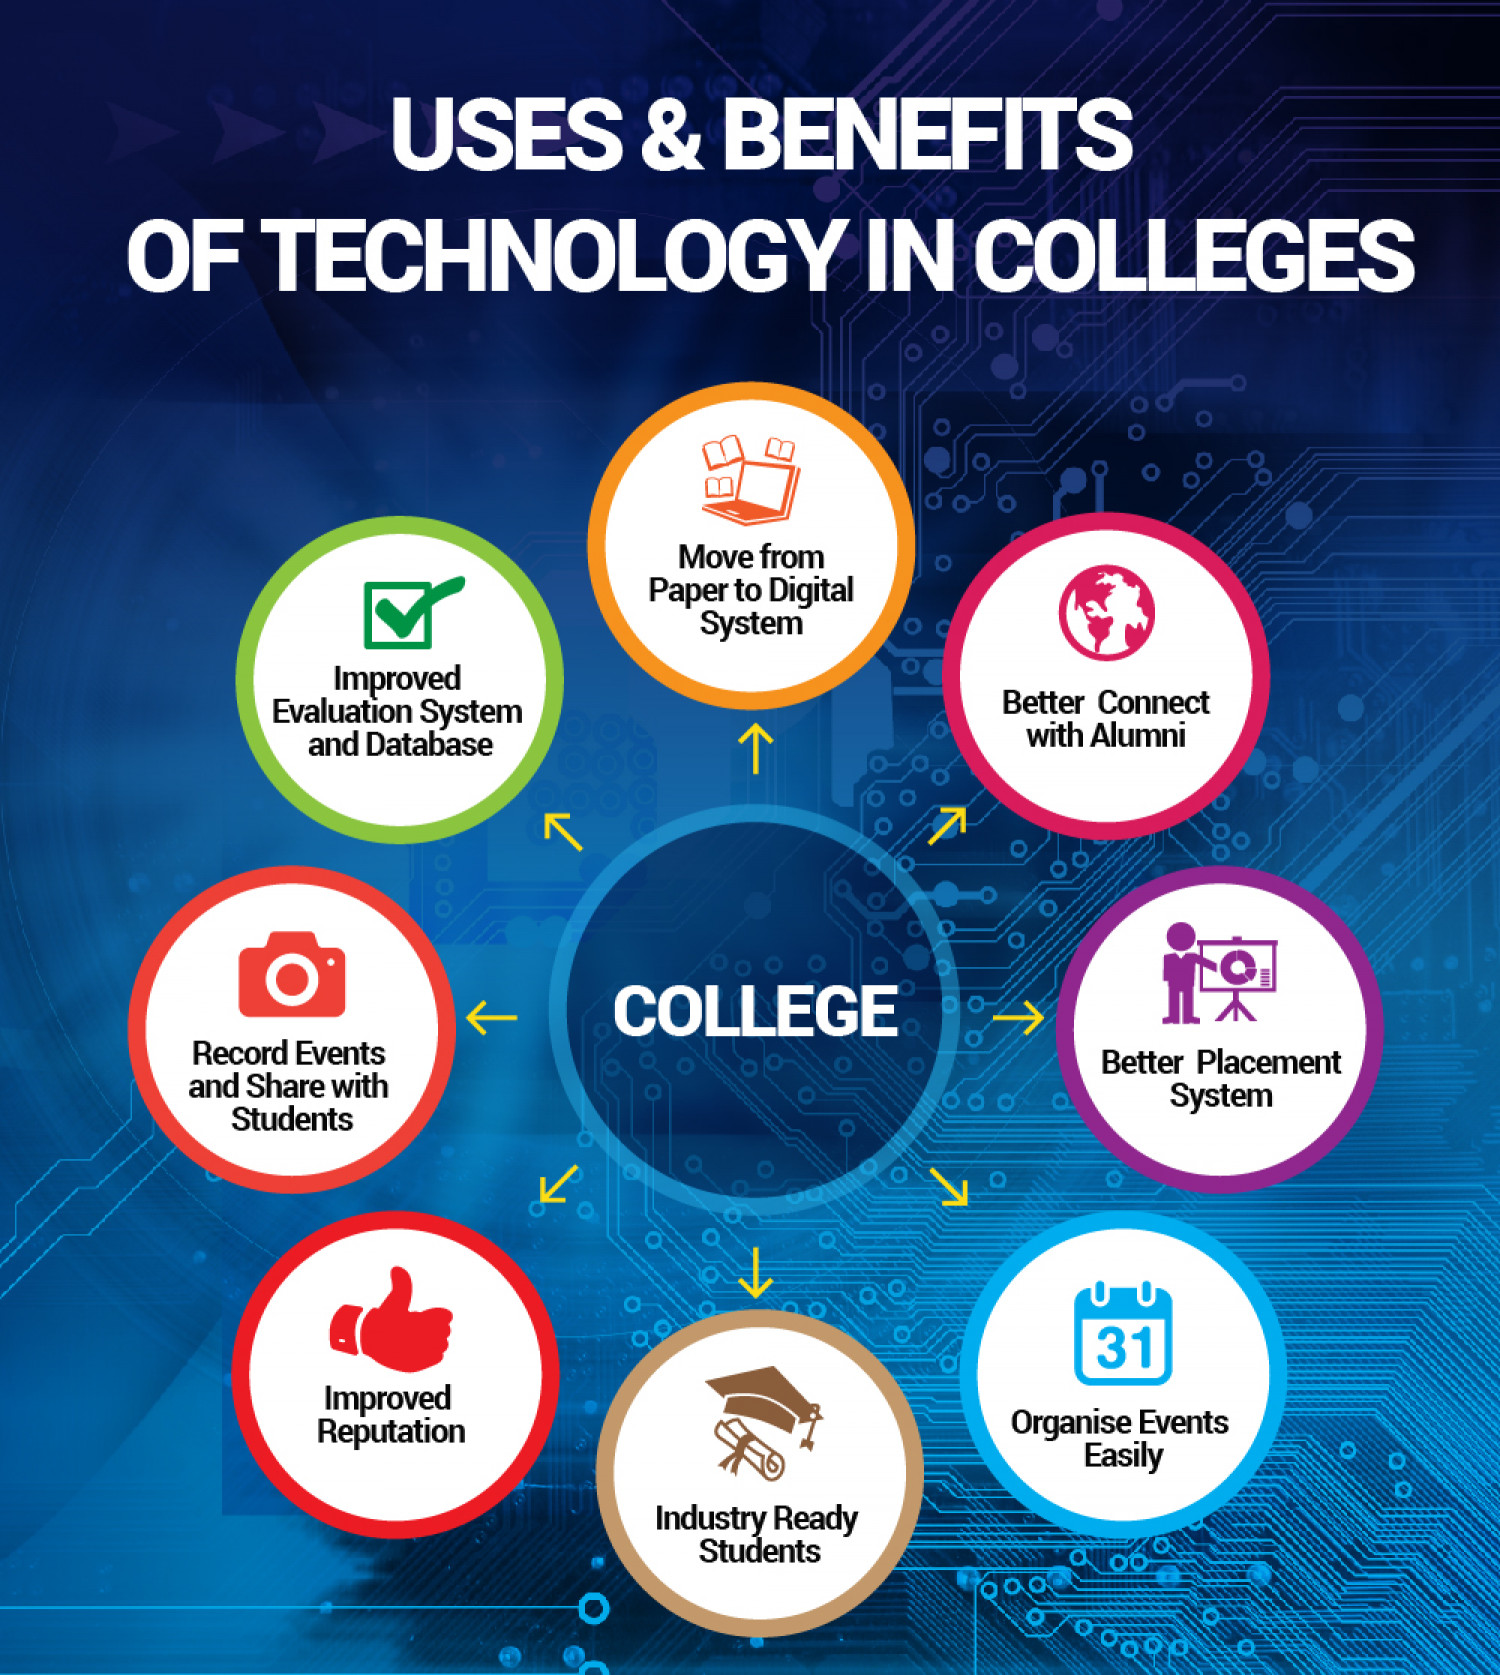 uses-and-benefits-of-technology-in-college_534fbe5a407a6_w1500.jpg